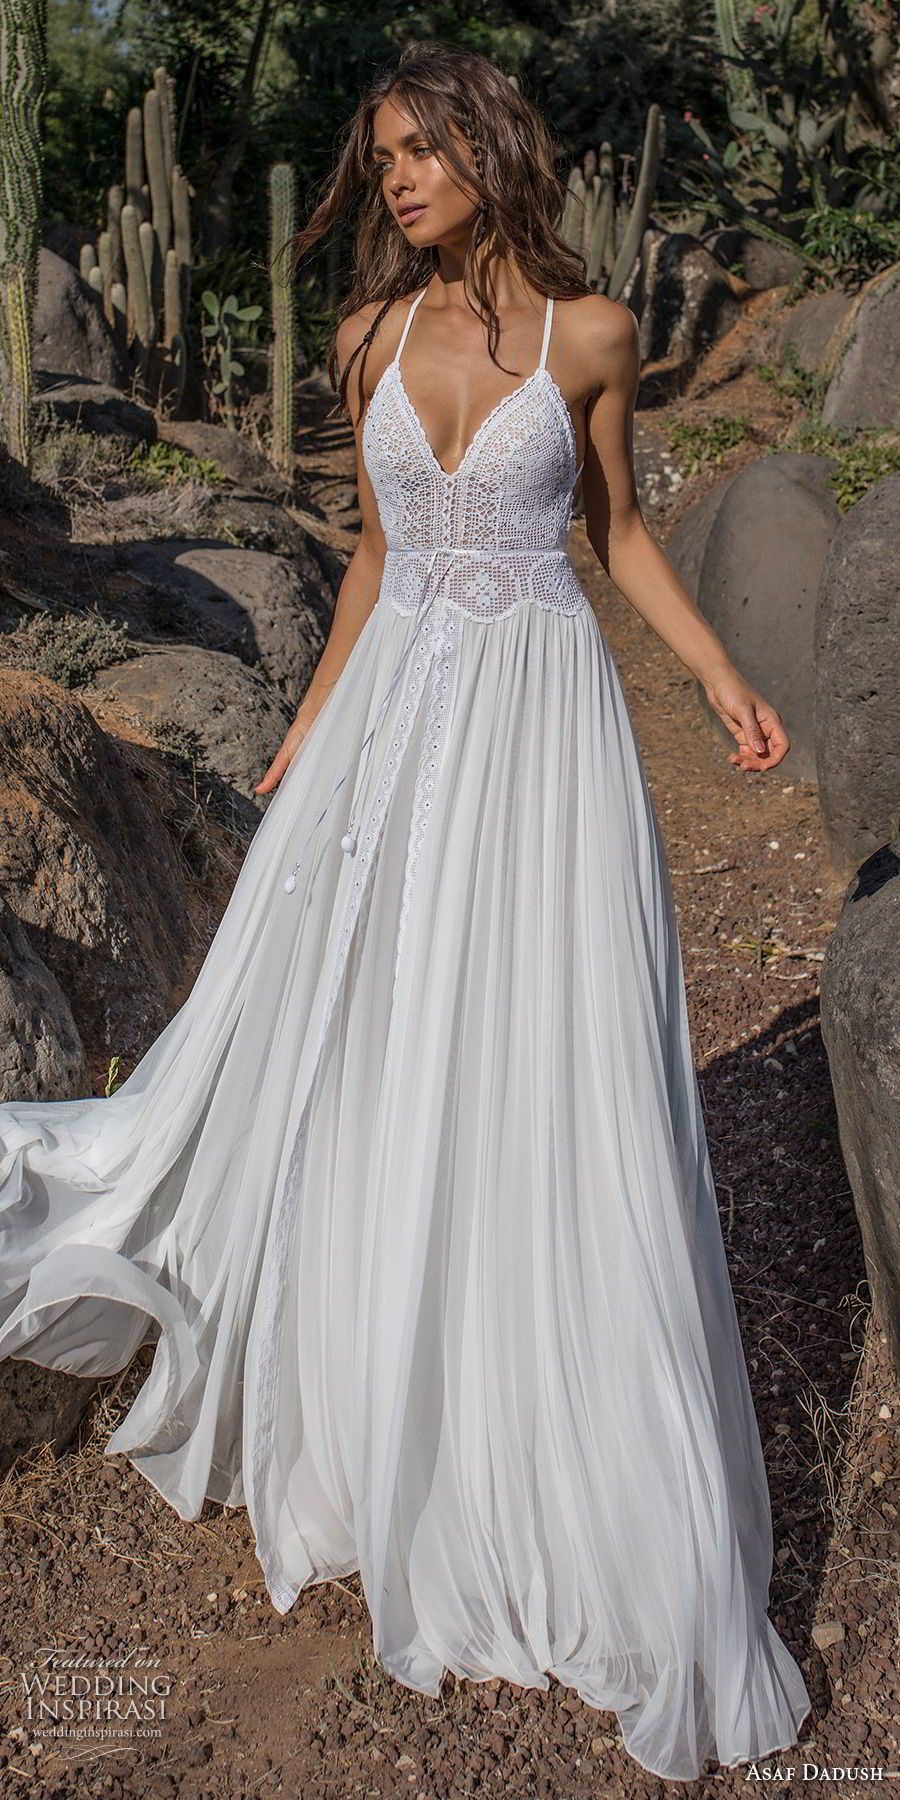 ... 2018 bridal sleeveless thin strap sweetheart neckline heavily  embellished bodice romantic bohemian soft a line wedding dress open strap  back sweep train ... 2ea5c75610c6